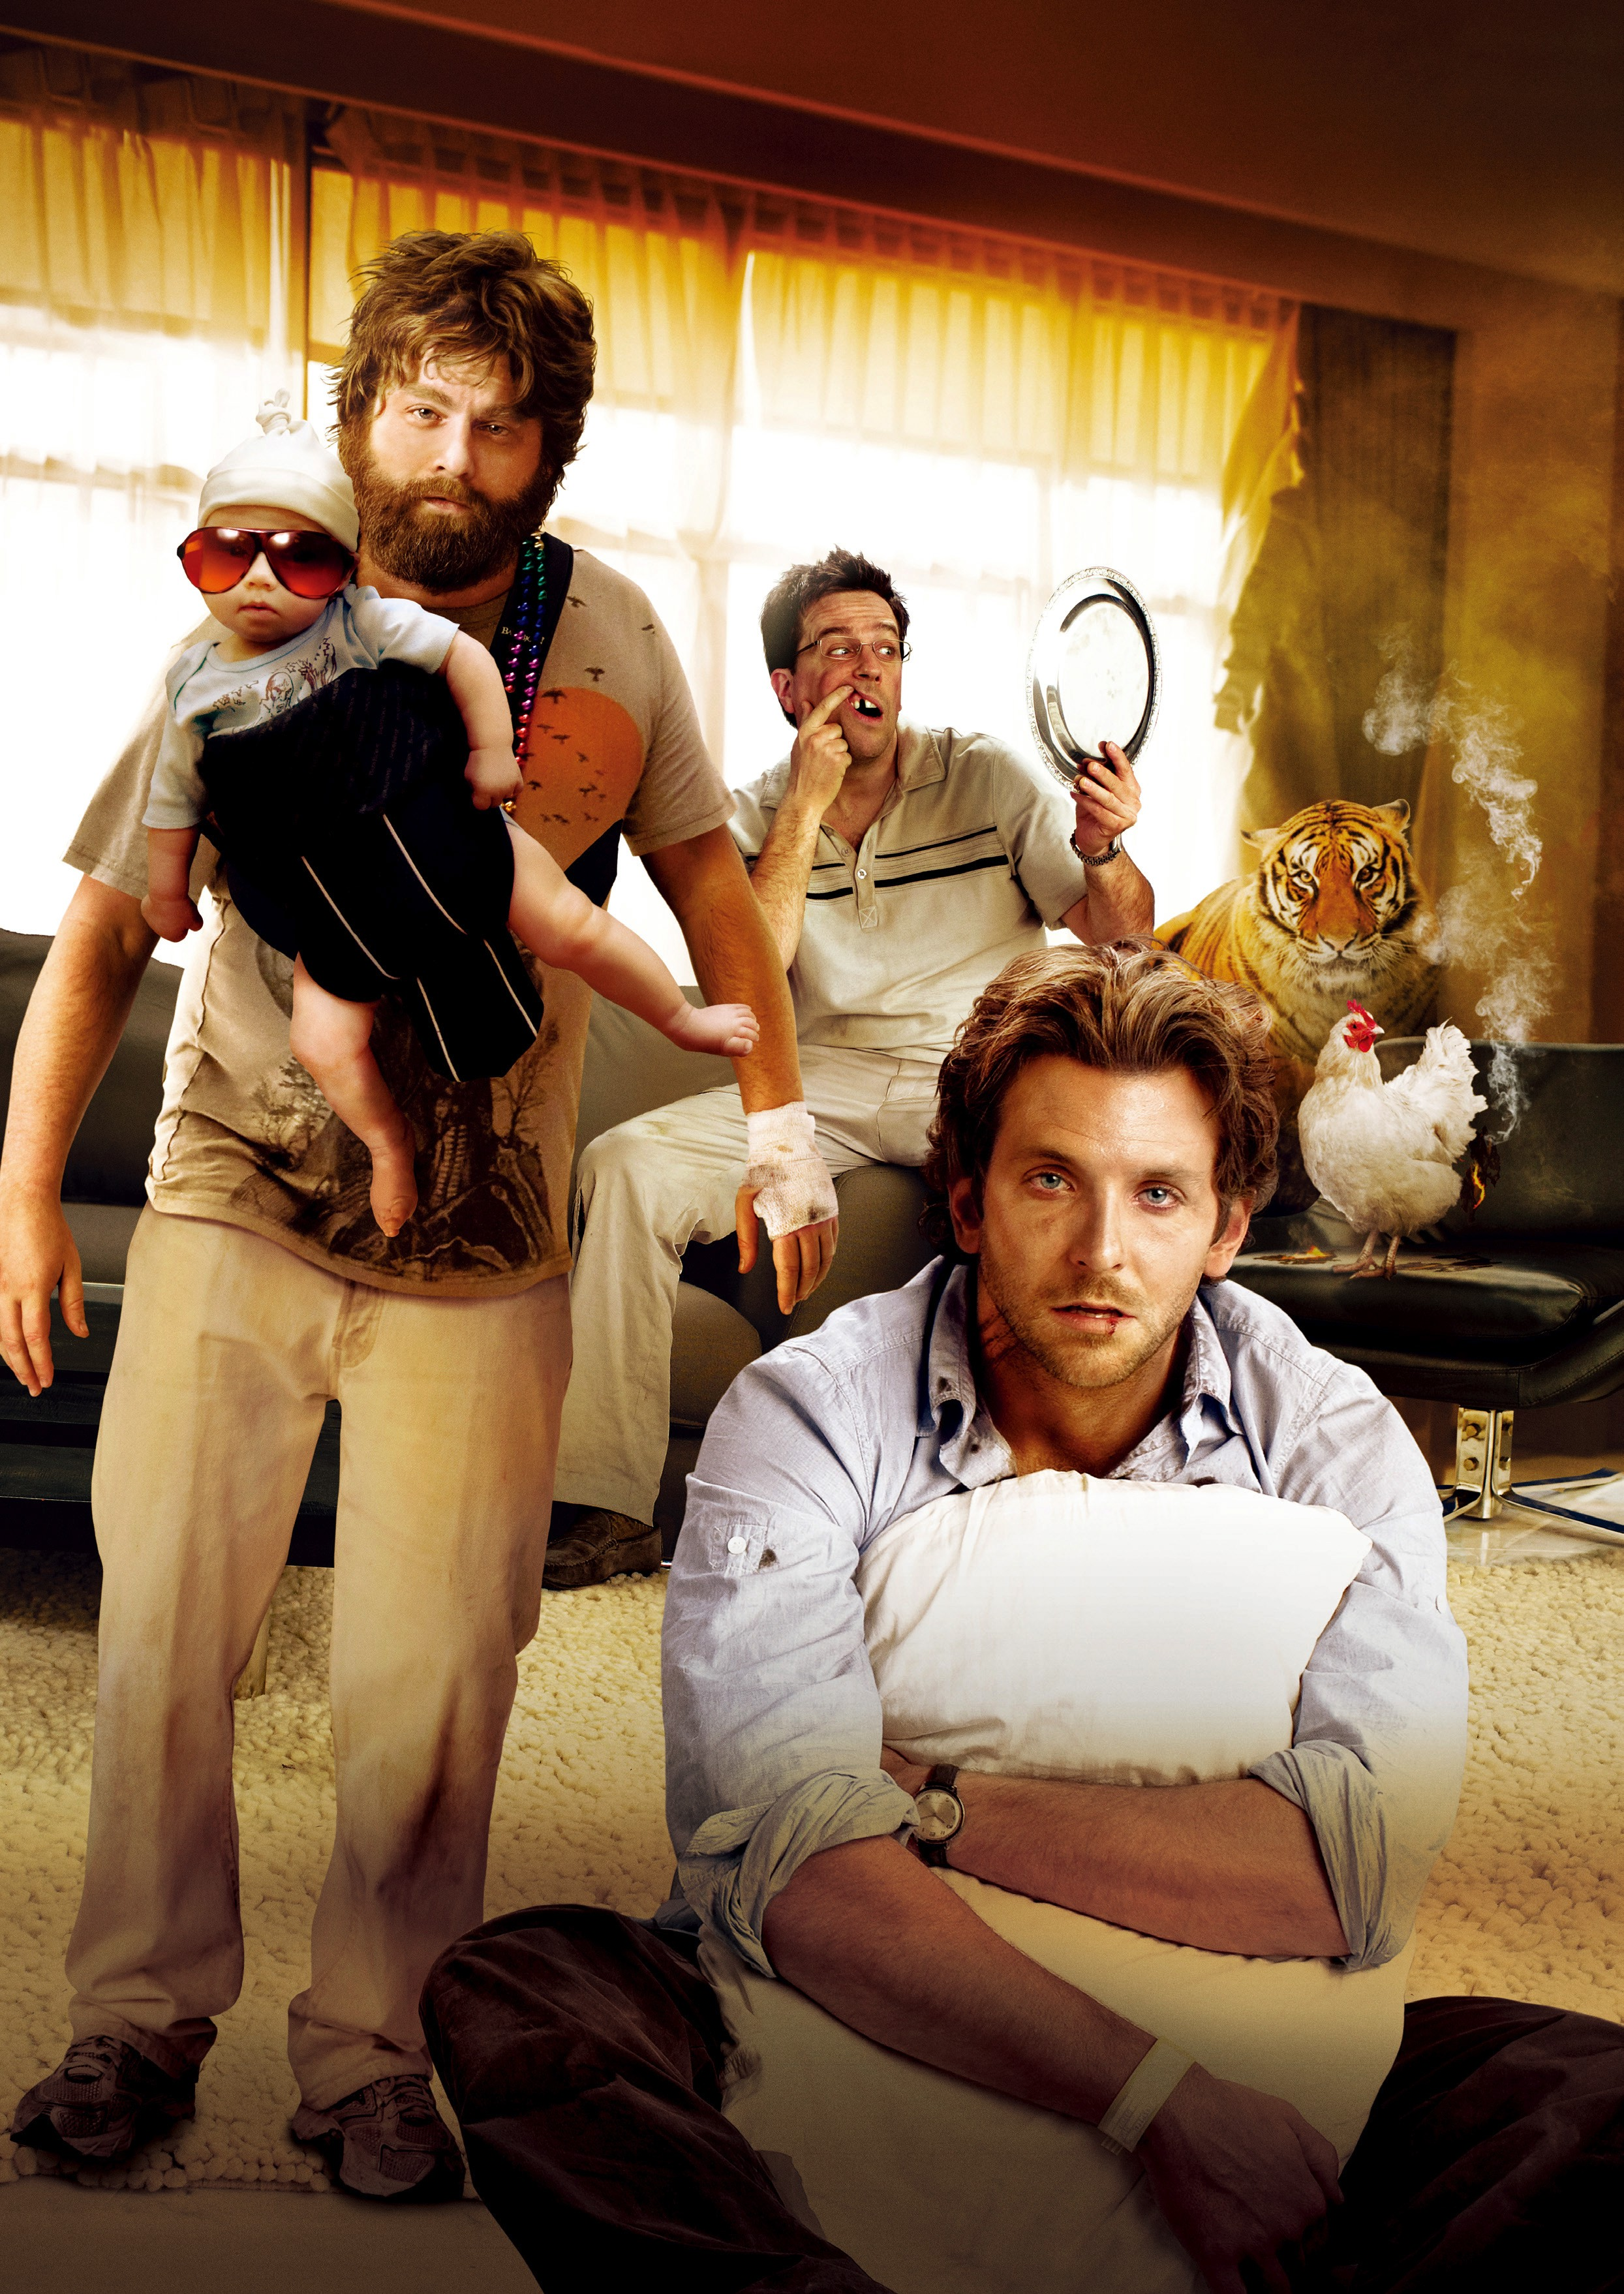 The Hangover, Zach Galifianakis, Ed Helms and Bradley Cooper